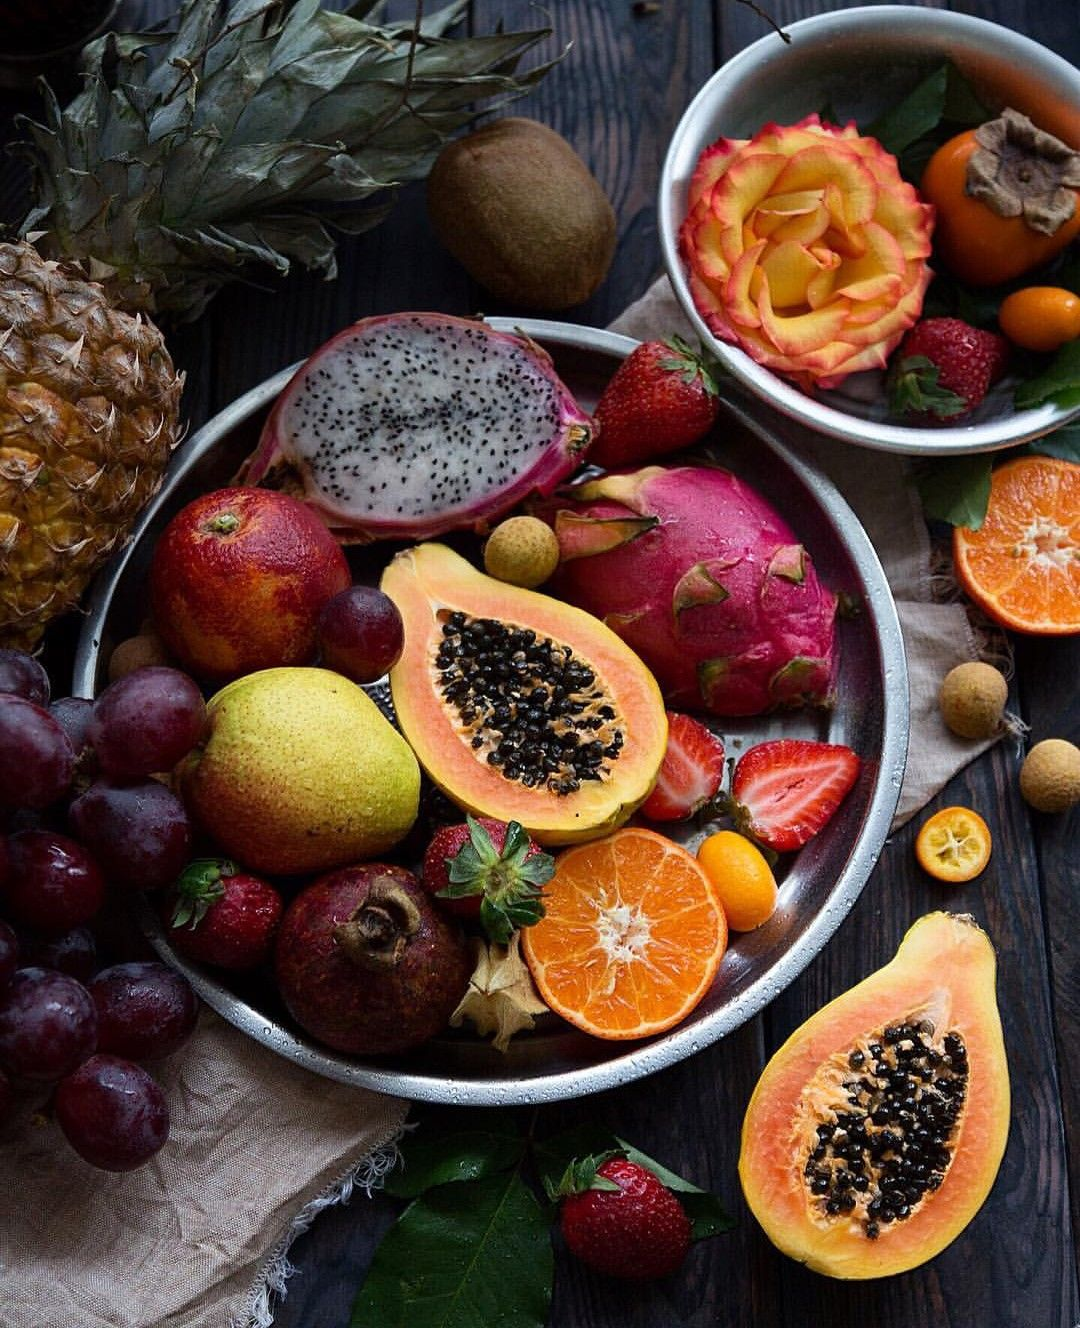 Foodlover: Are Fruits Too Sugary